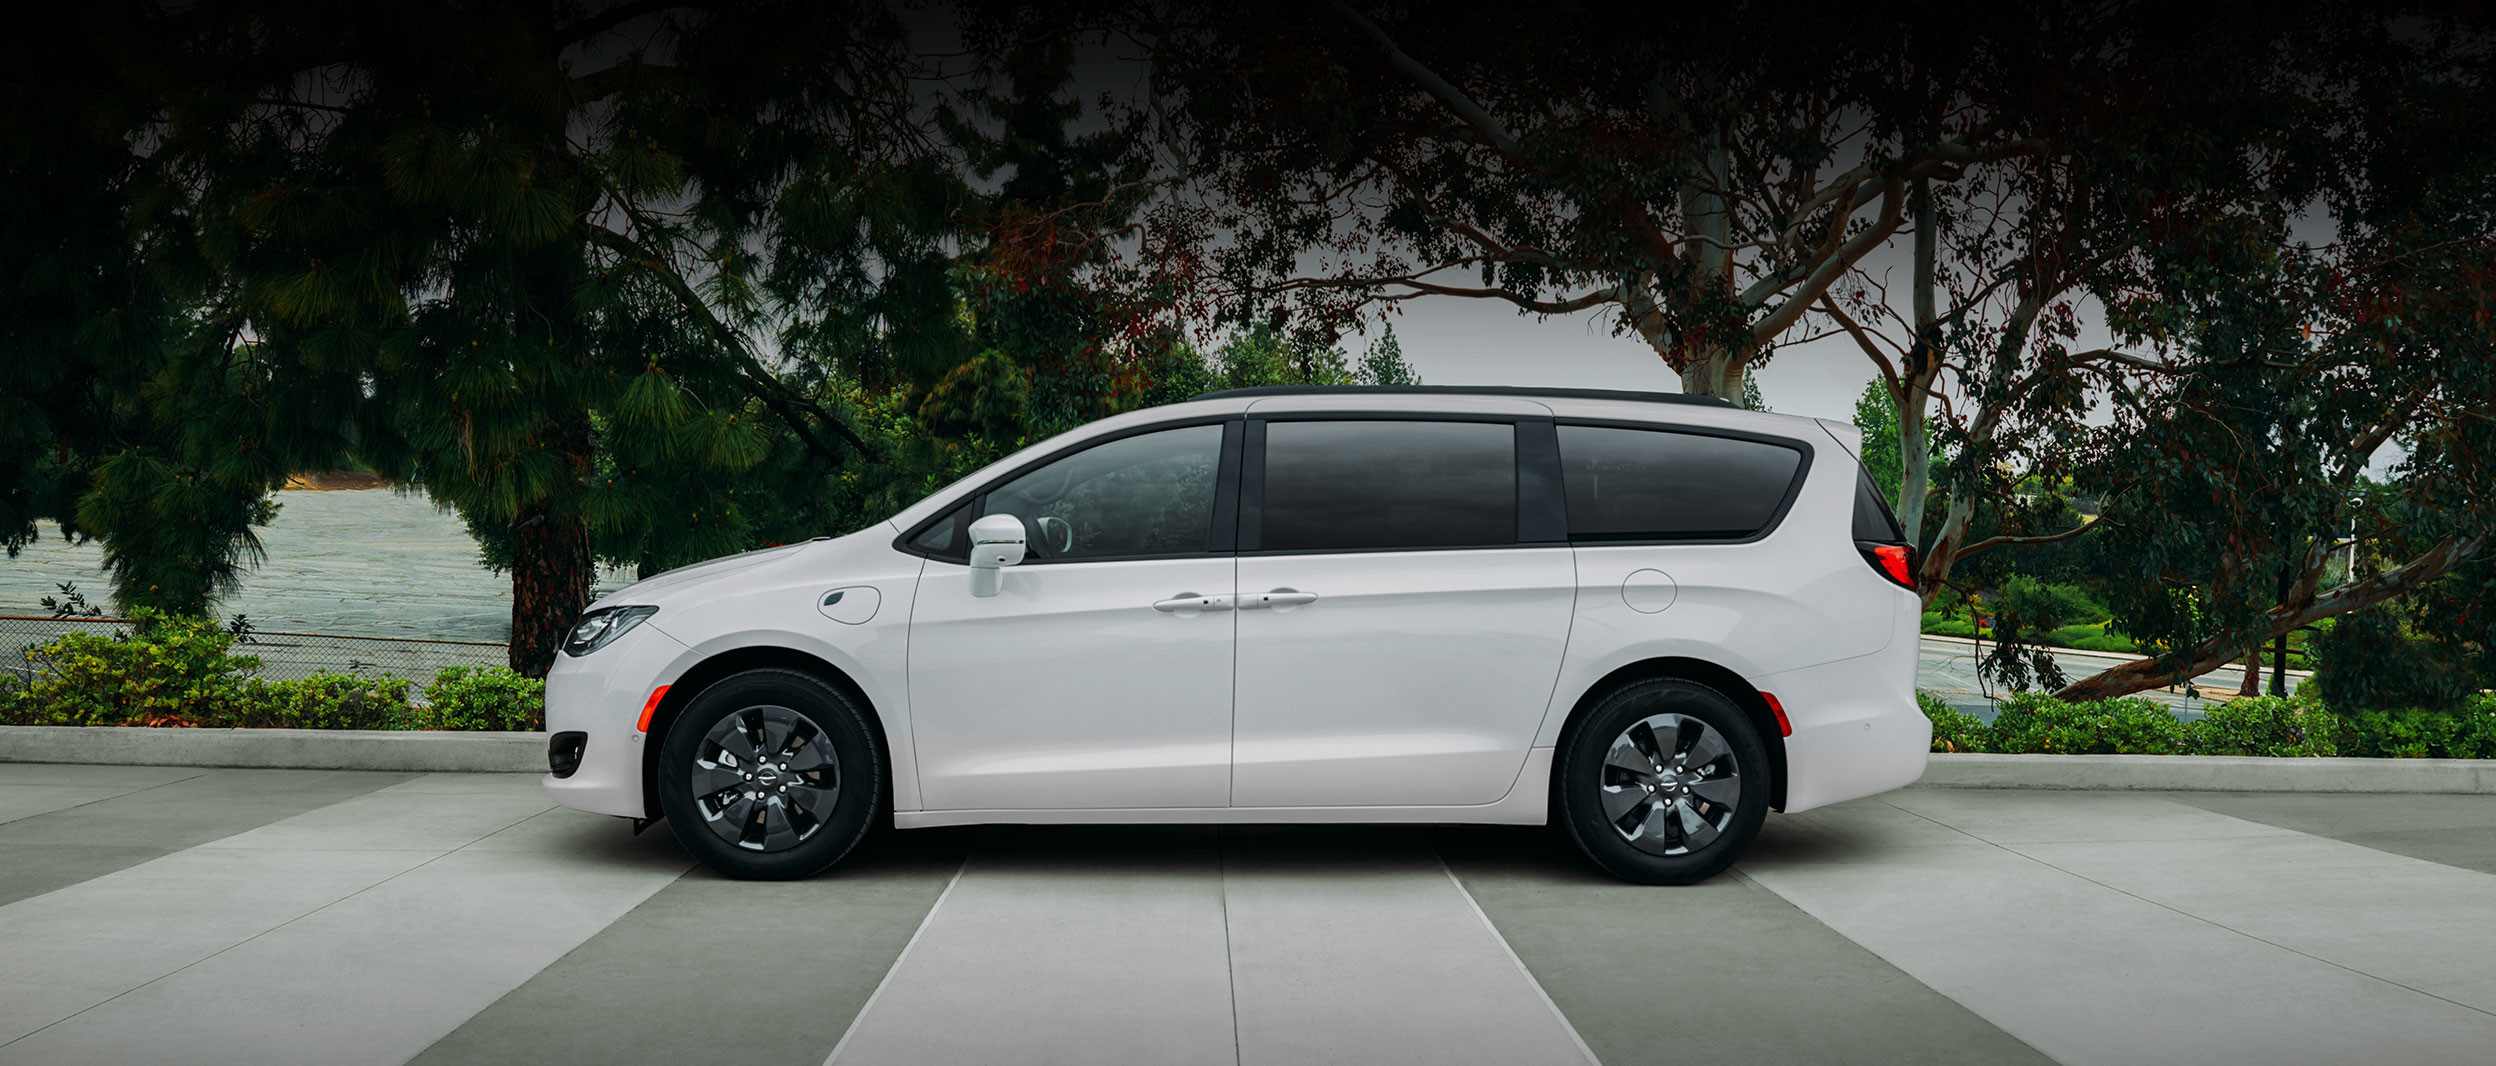 Side view of a parked white 2020 Pacifica Hybrid